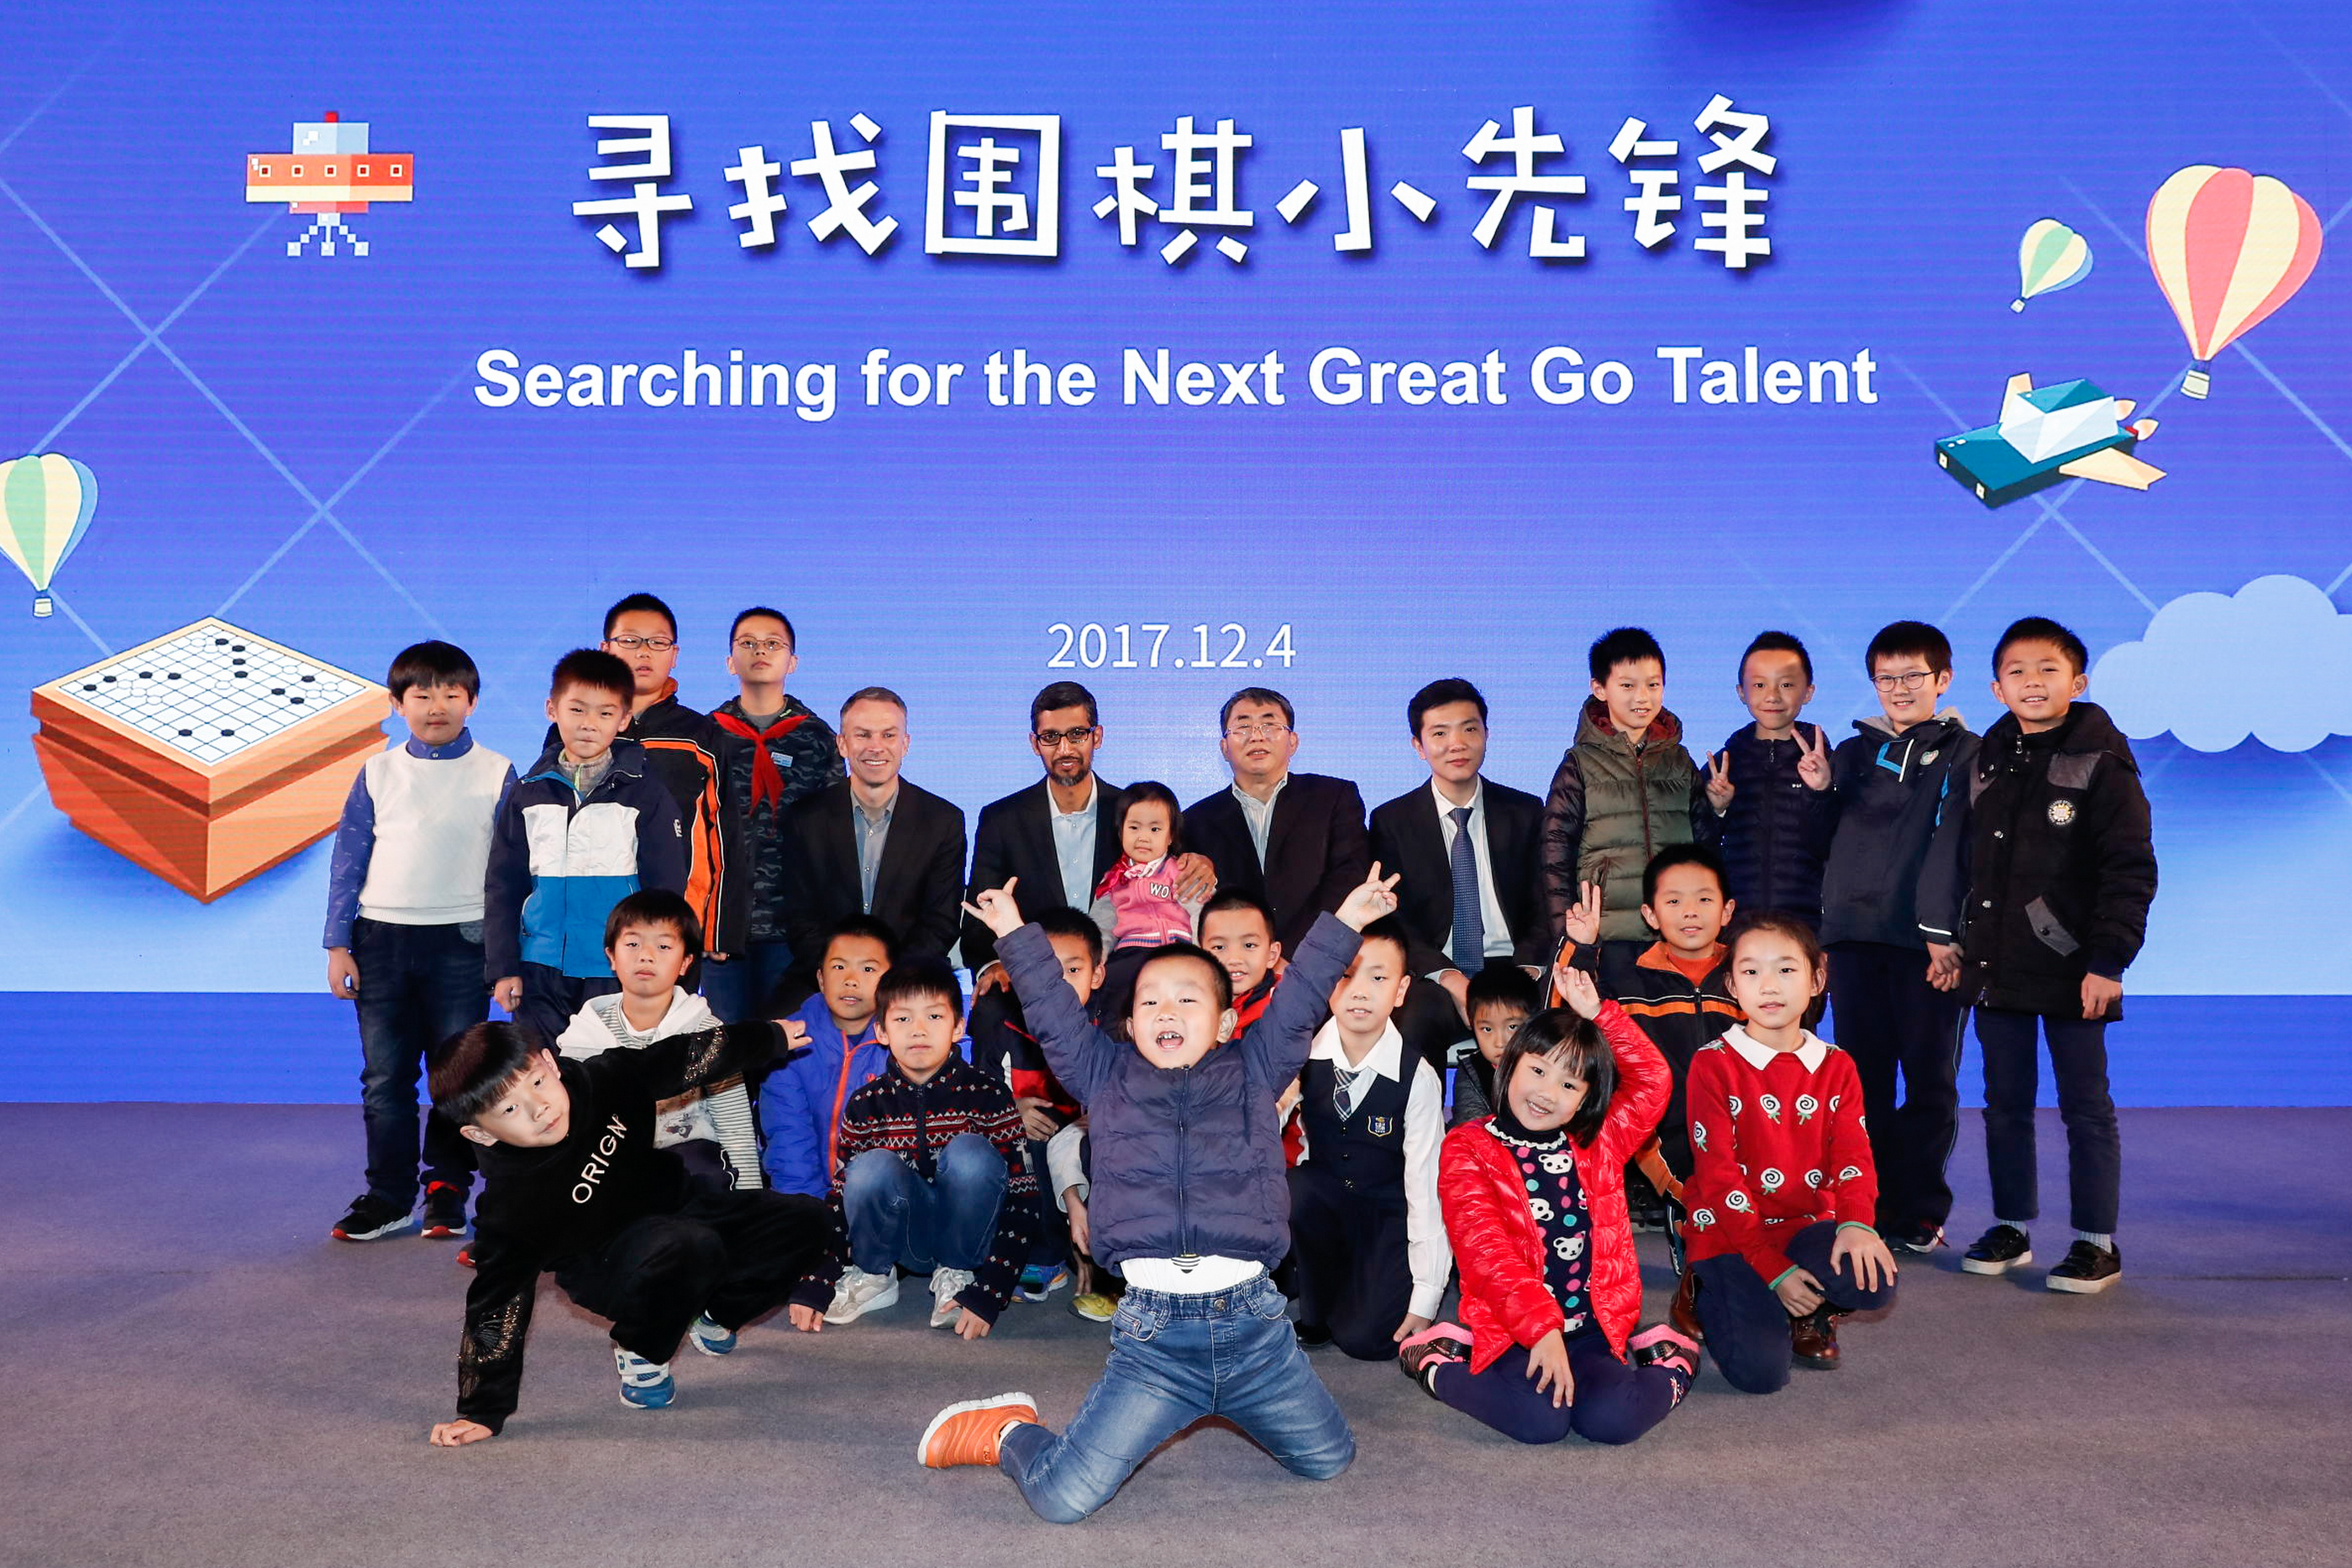 Google CEO Sundar Pichai with students of the Nie Weiping Go School